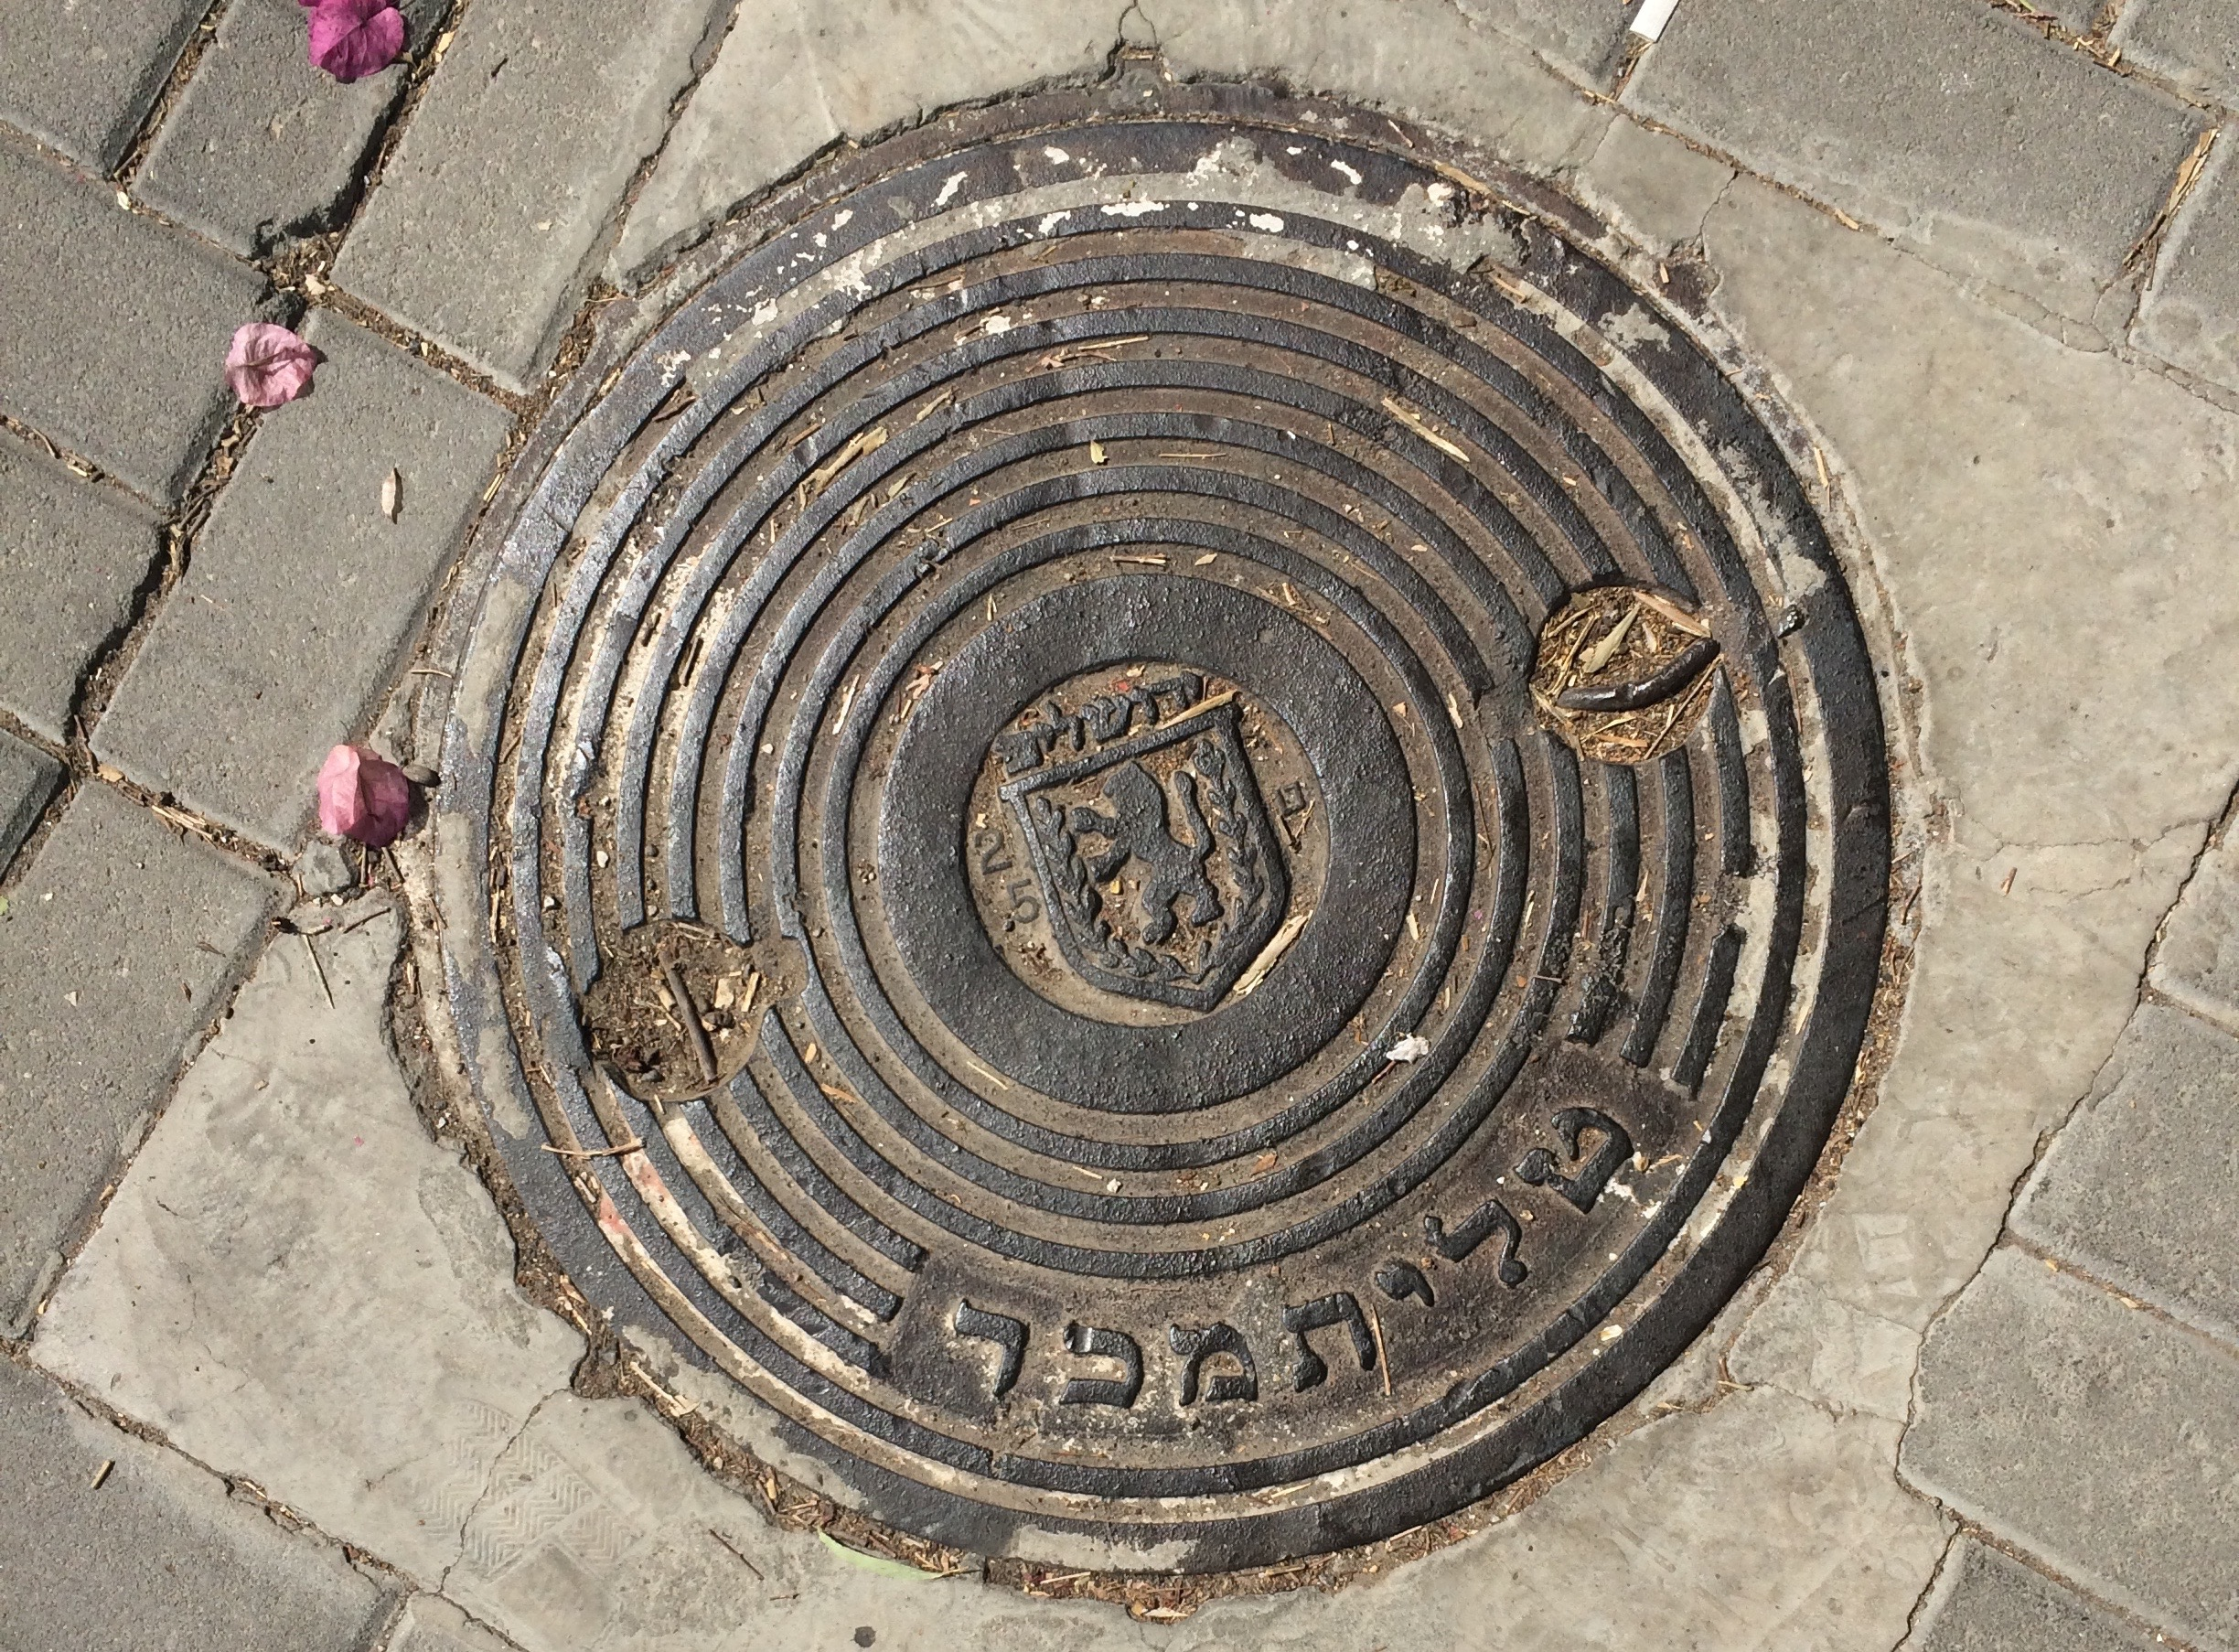 A Jerusalem manhole cover. Notice the etching of the lion, symbol of the city that was established as the capital of the Jewish nation under King David's reign.